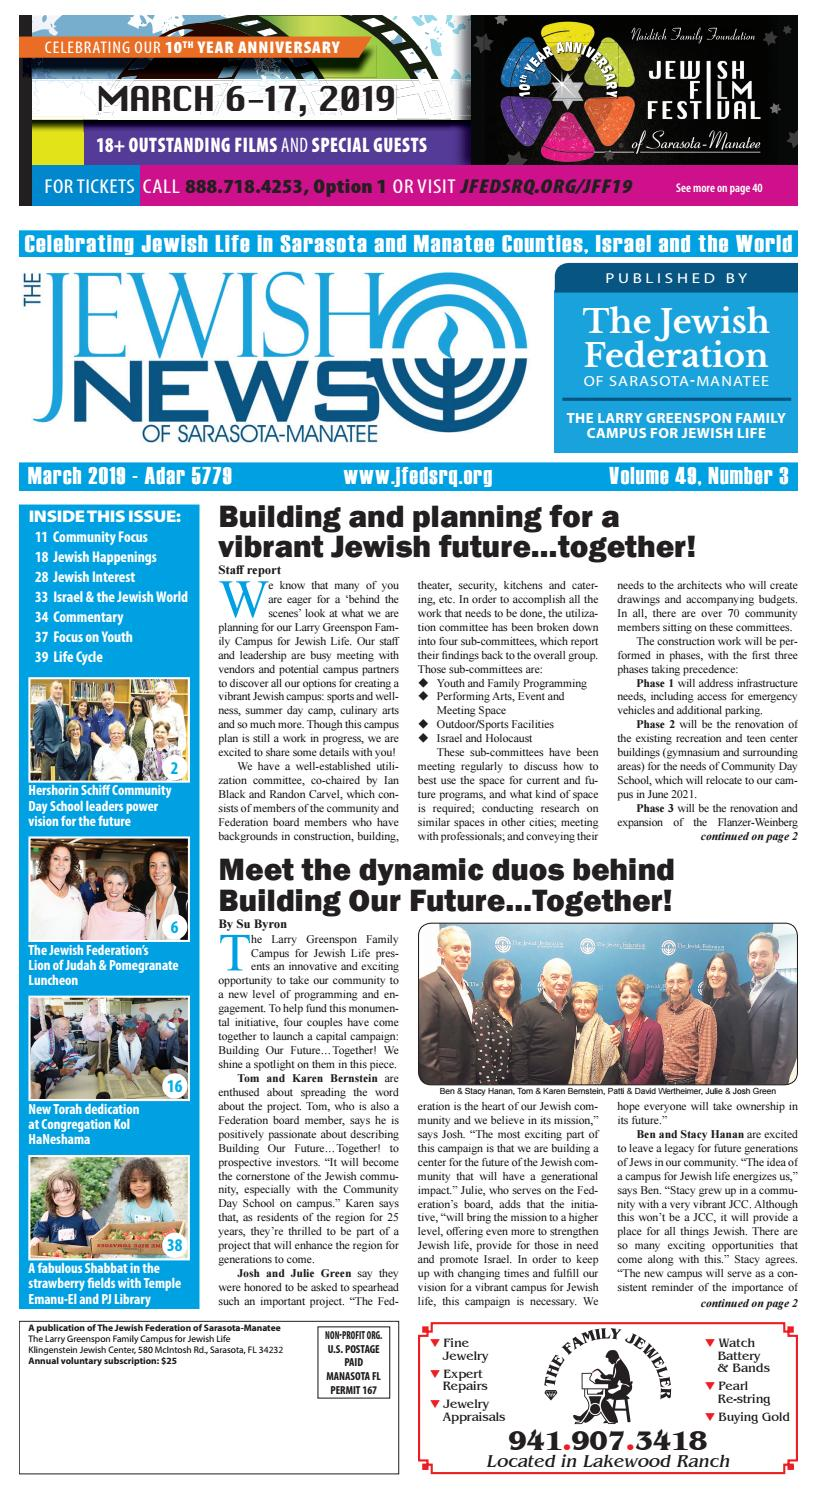 a4b8839064d The Jewish News - March 2019 by The Jewish Federation of Sarasota-Manatee -  issuu